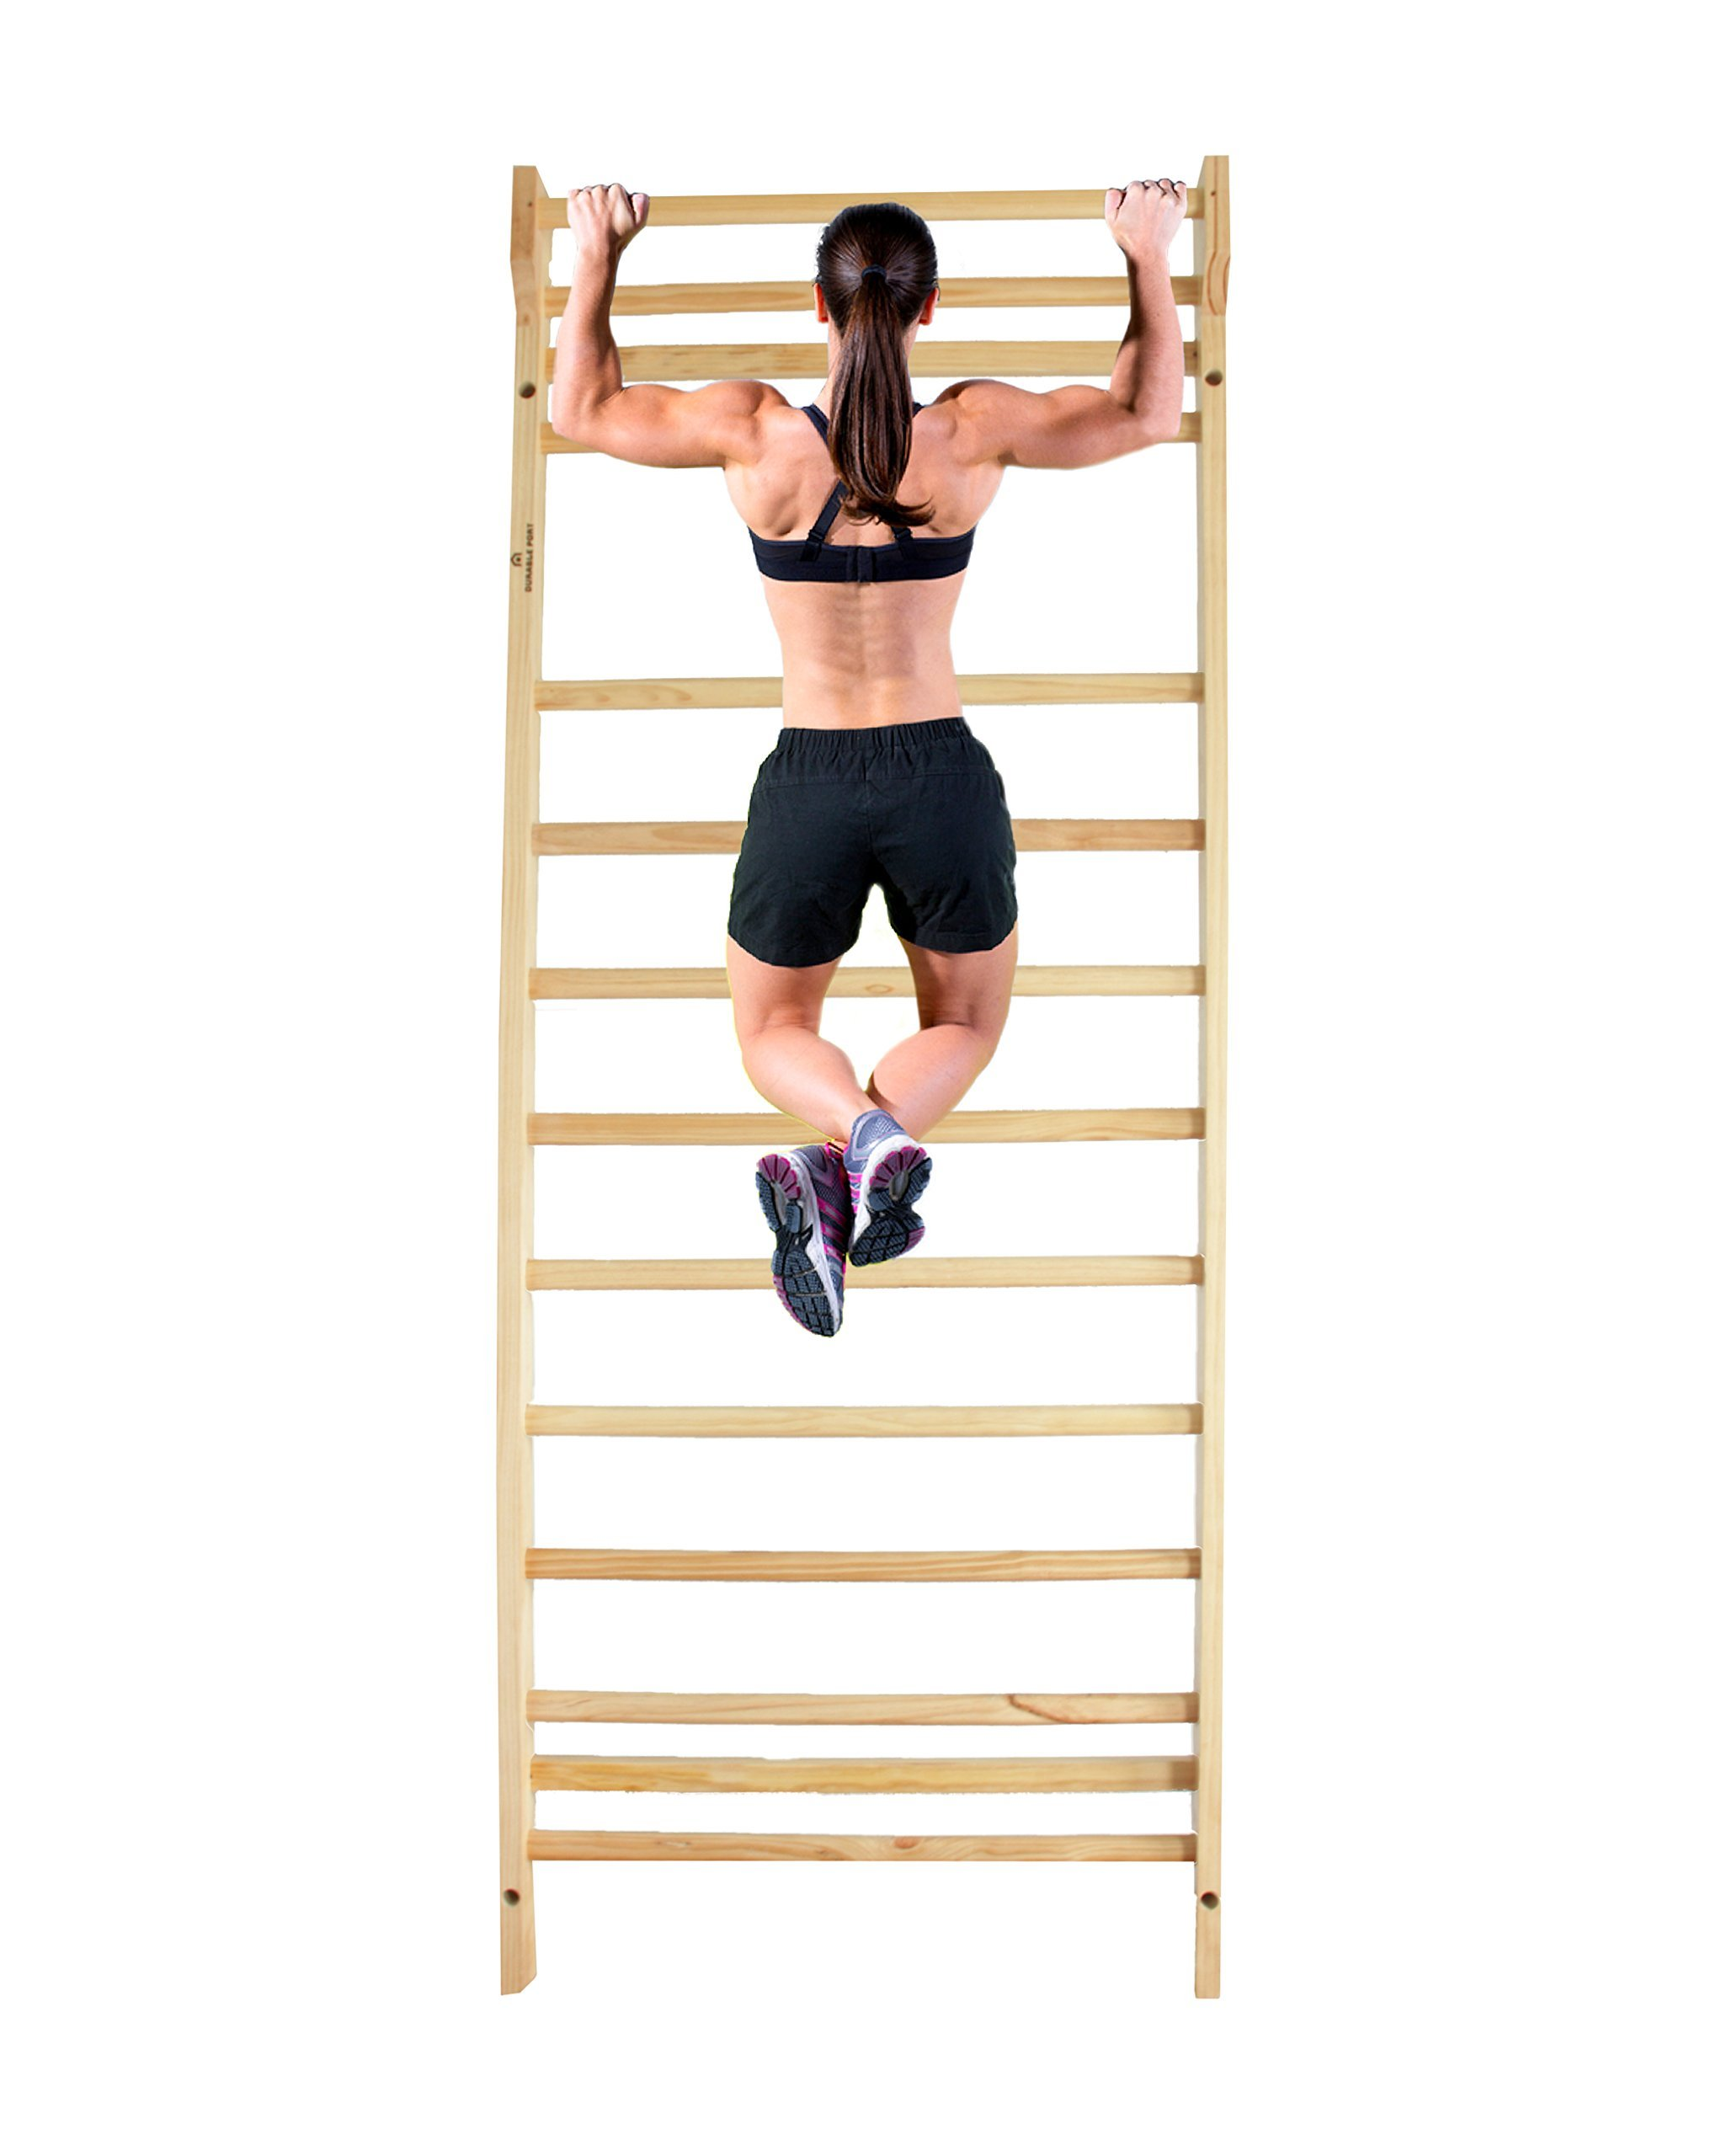 Durable Port Wood Stall Bar - Swedish Ladder with 12 Rods for Physical Therapy, Workout & Training Range of Motion Exercises - Sturdy & Solid - Ideal for Homes, Clinics, Gyms, and Hospitals